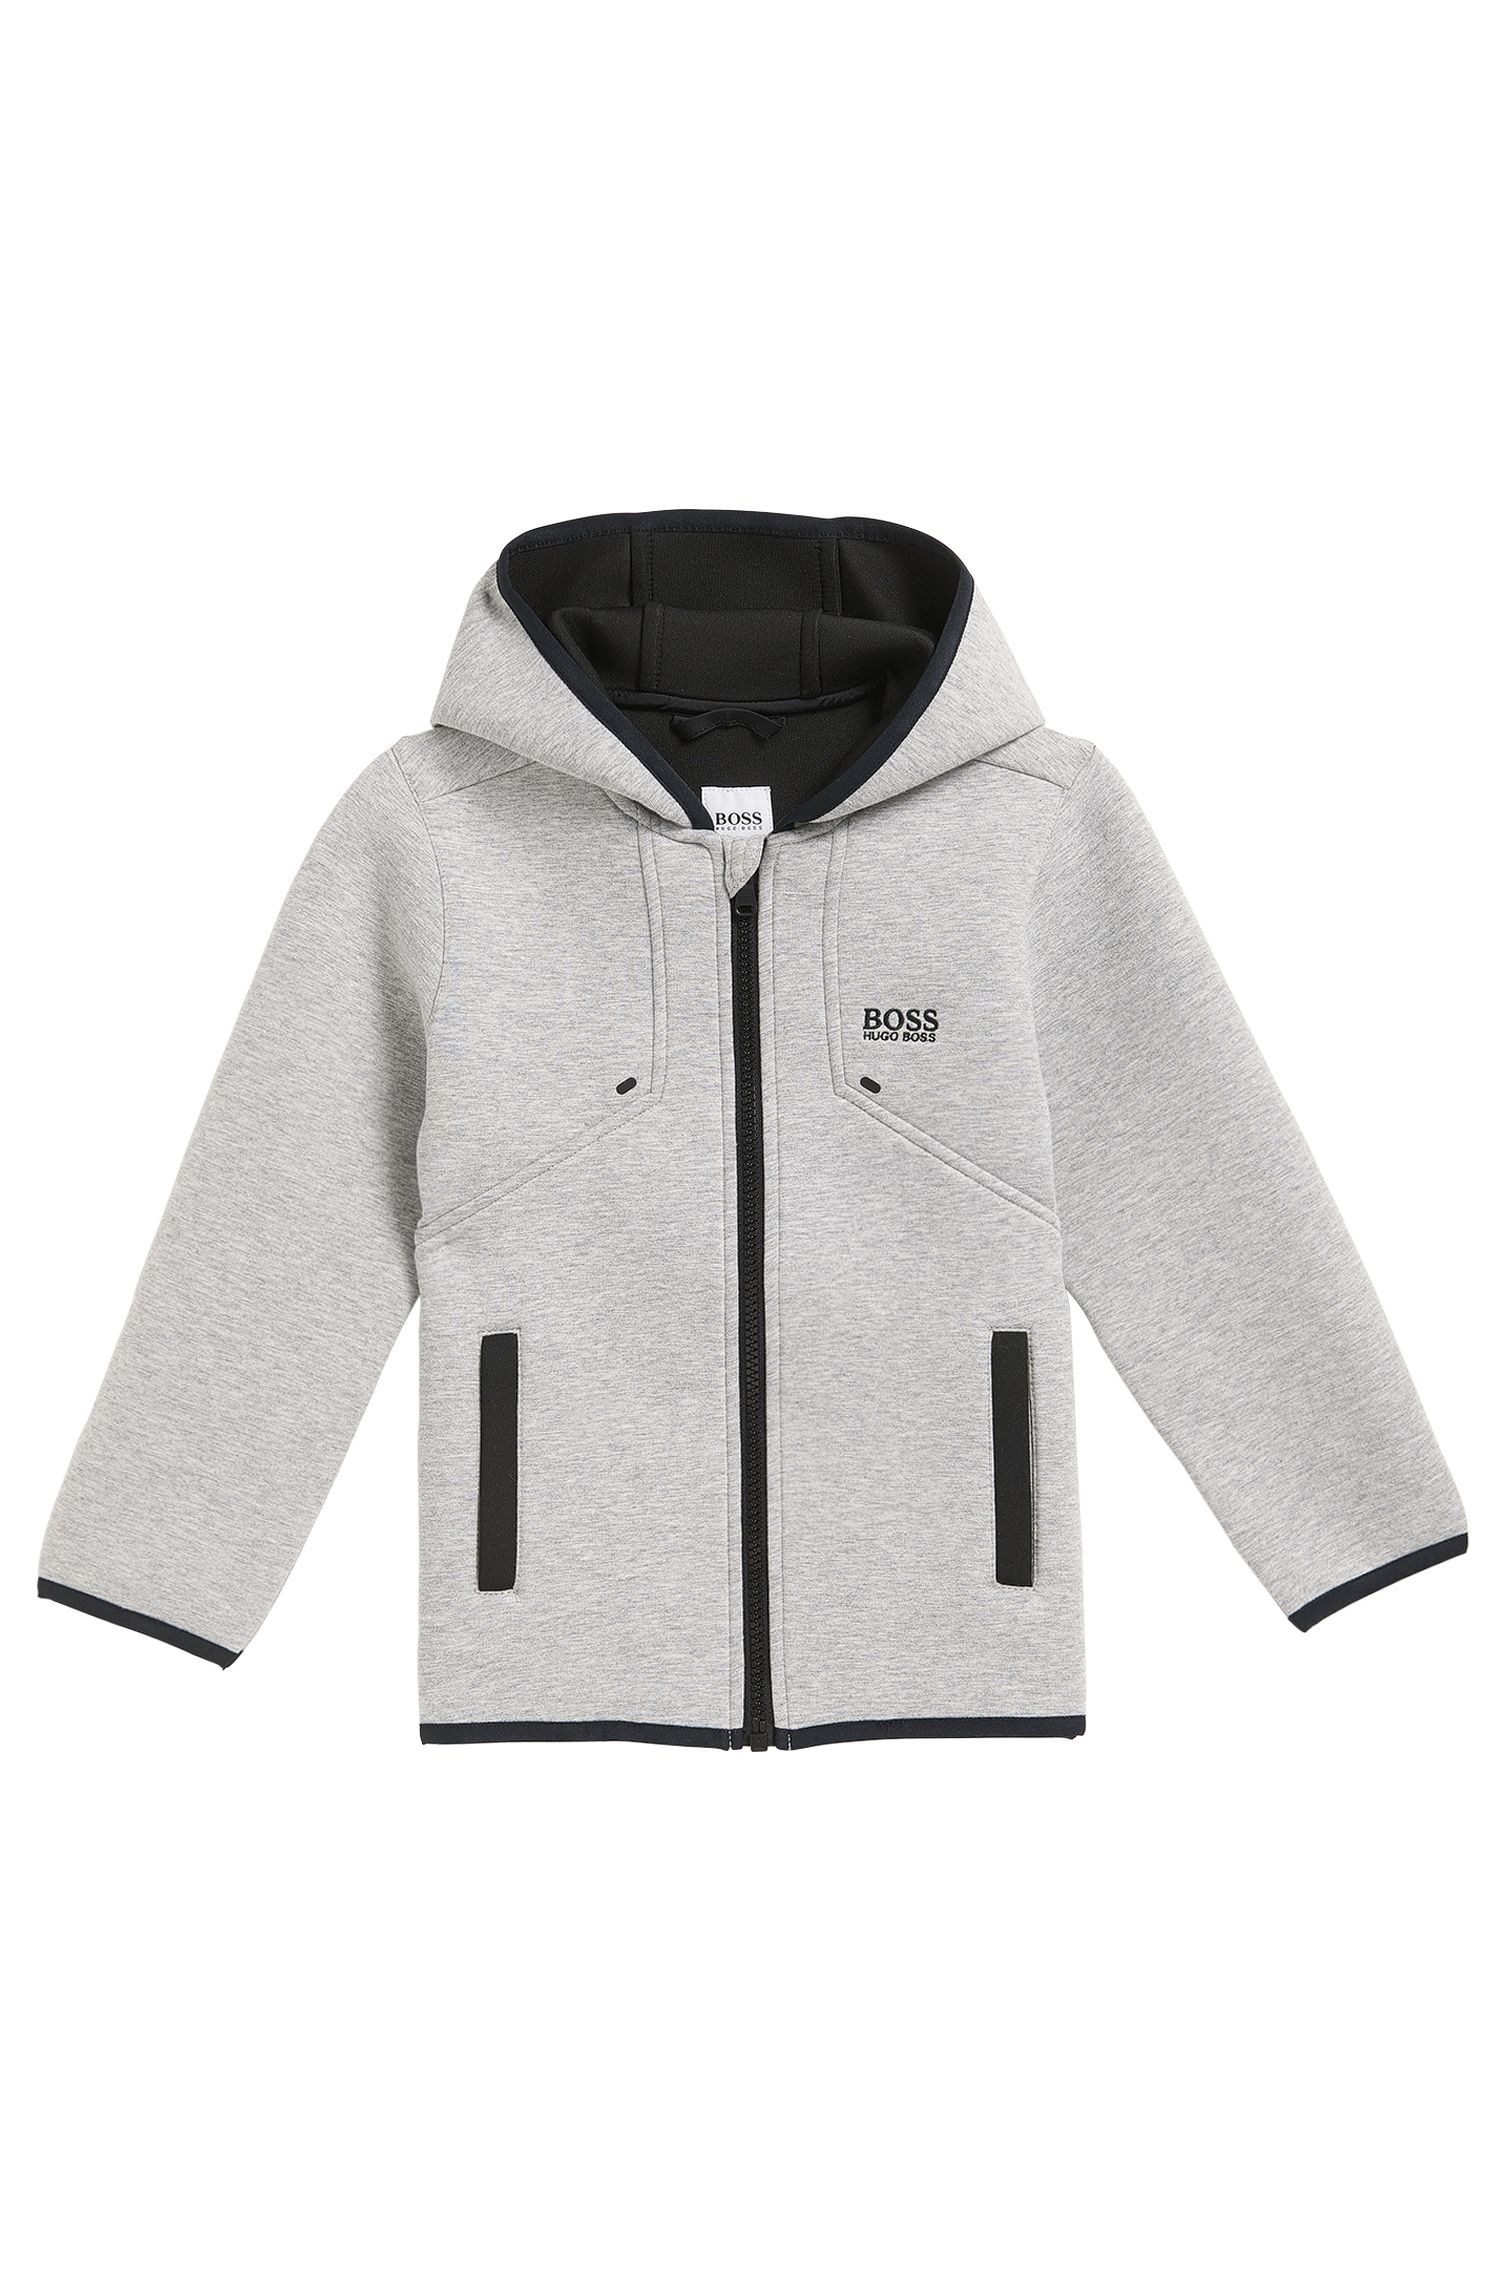 Kids' regular-fit coat in bonded stretch fabric